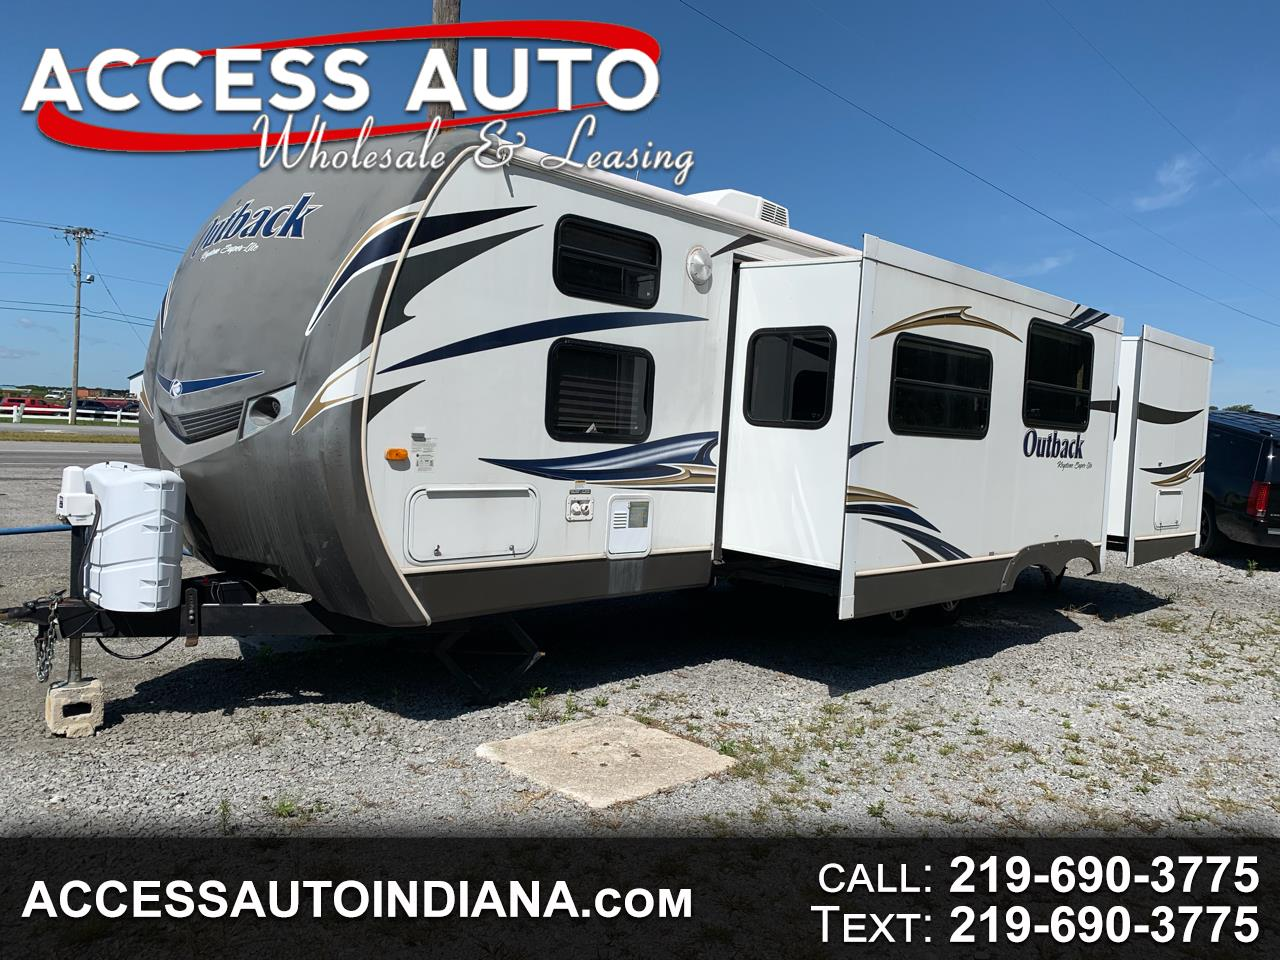 2012 Keystone Outback Travel Trailer